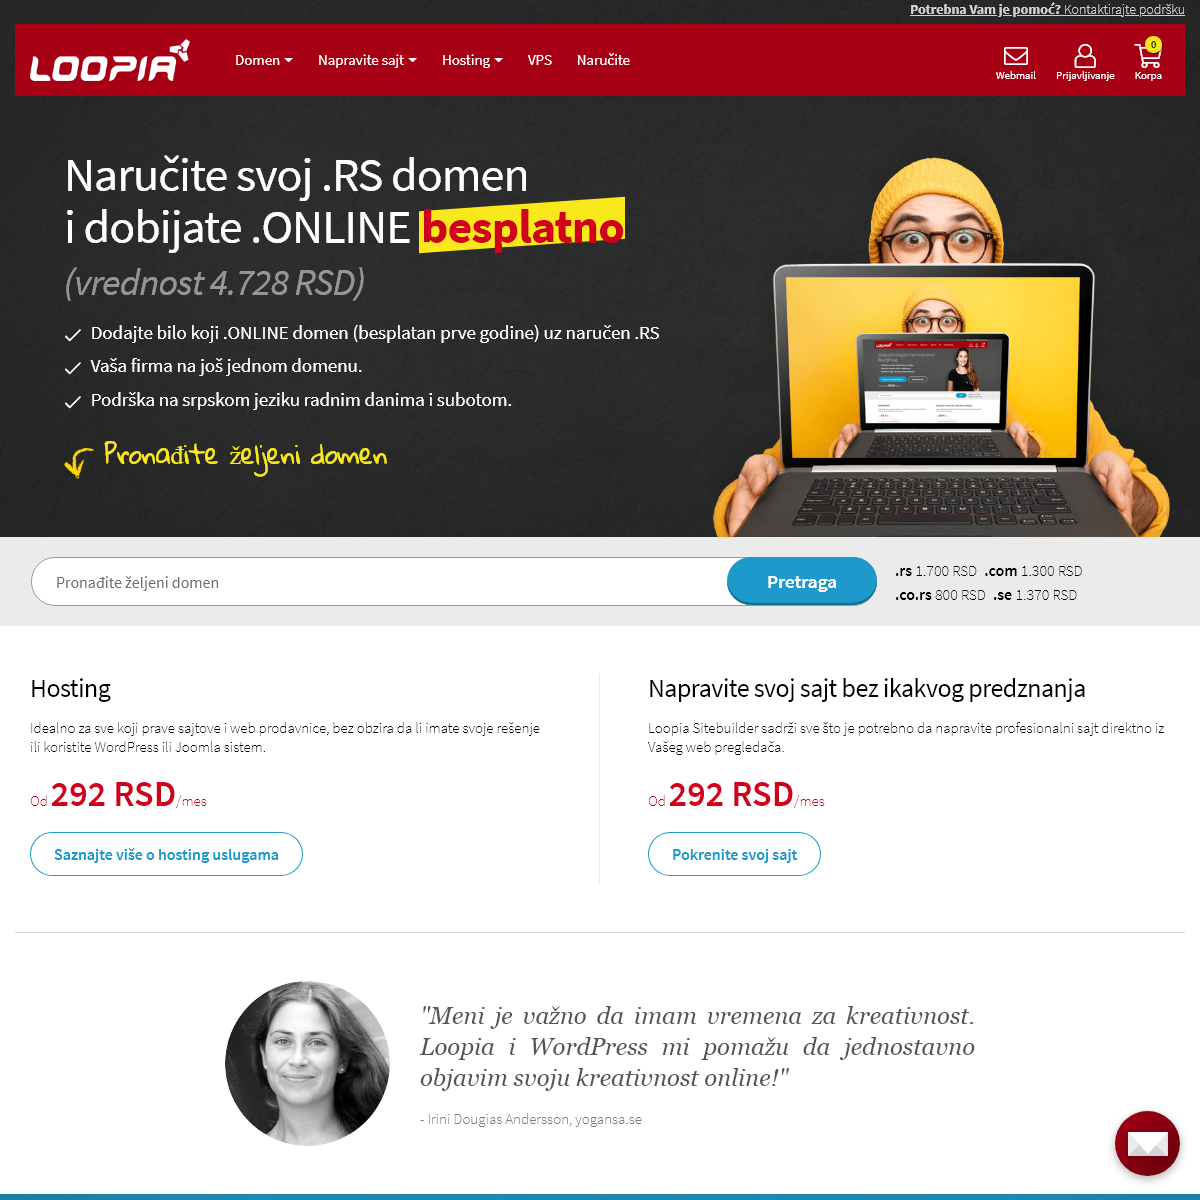 A complete backup of www.loopia.rs